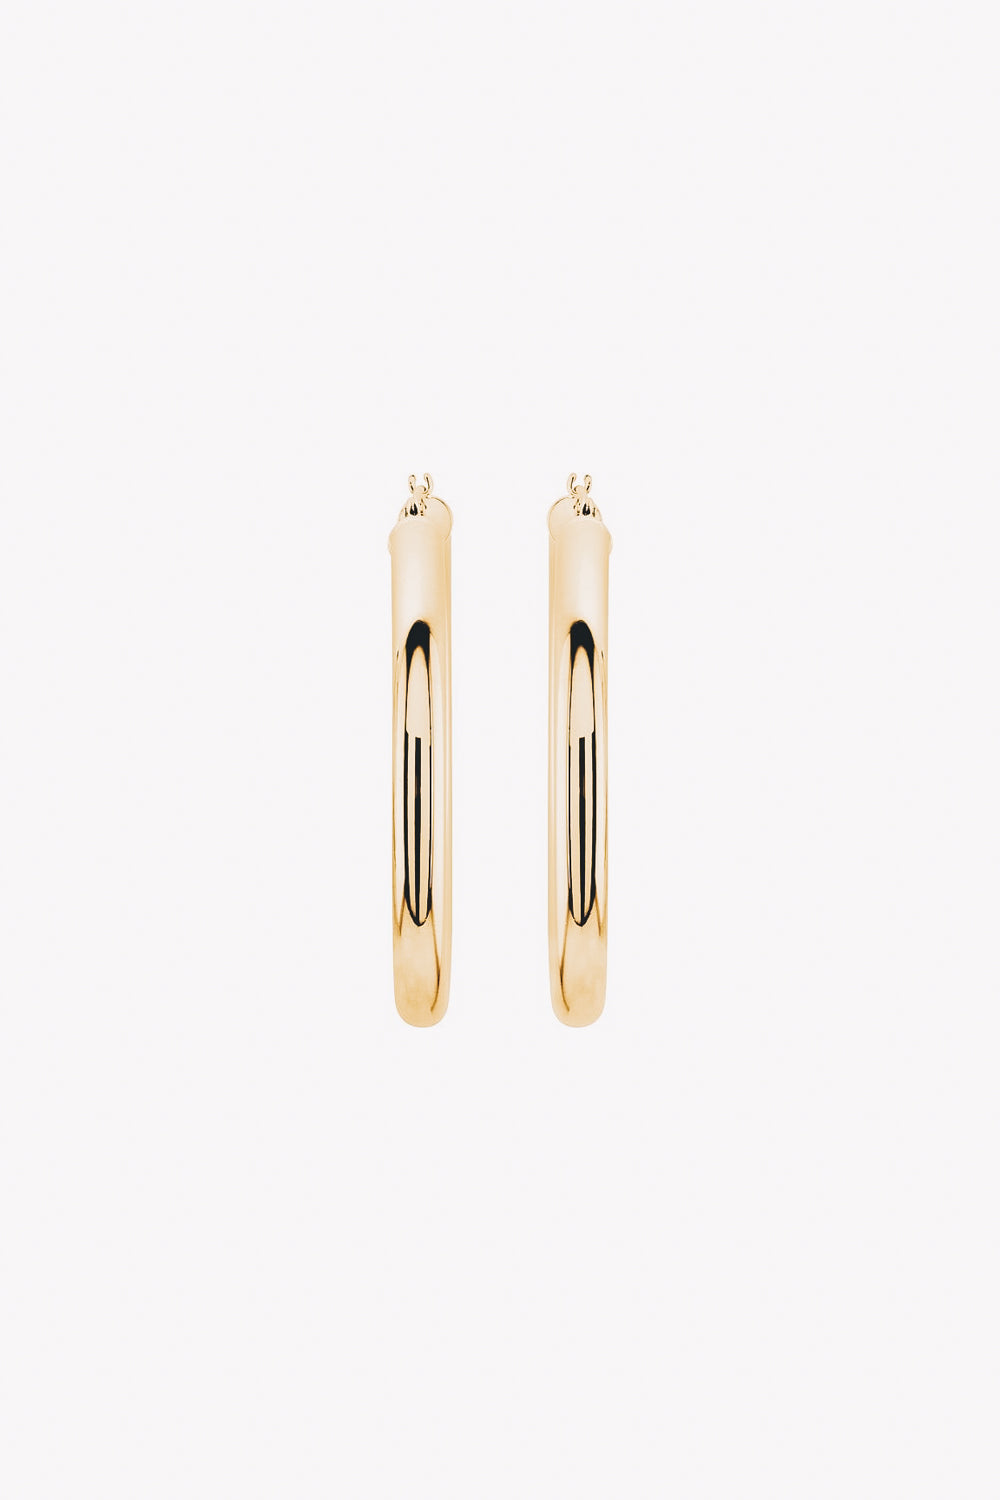 20 mm Tube Hoop Earrings | 14K Gold | Janna Conner